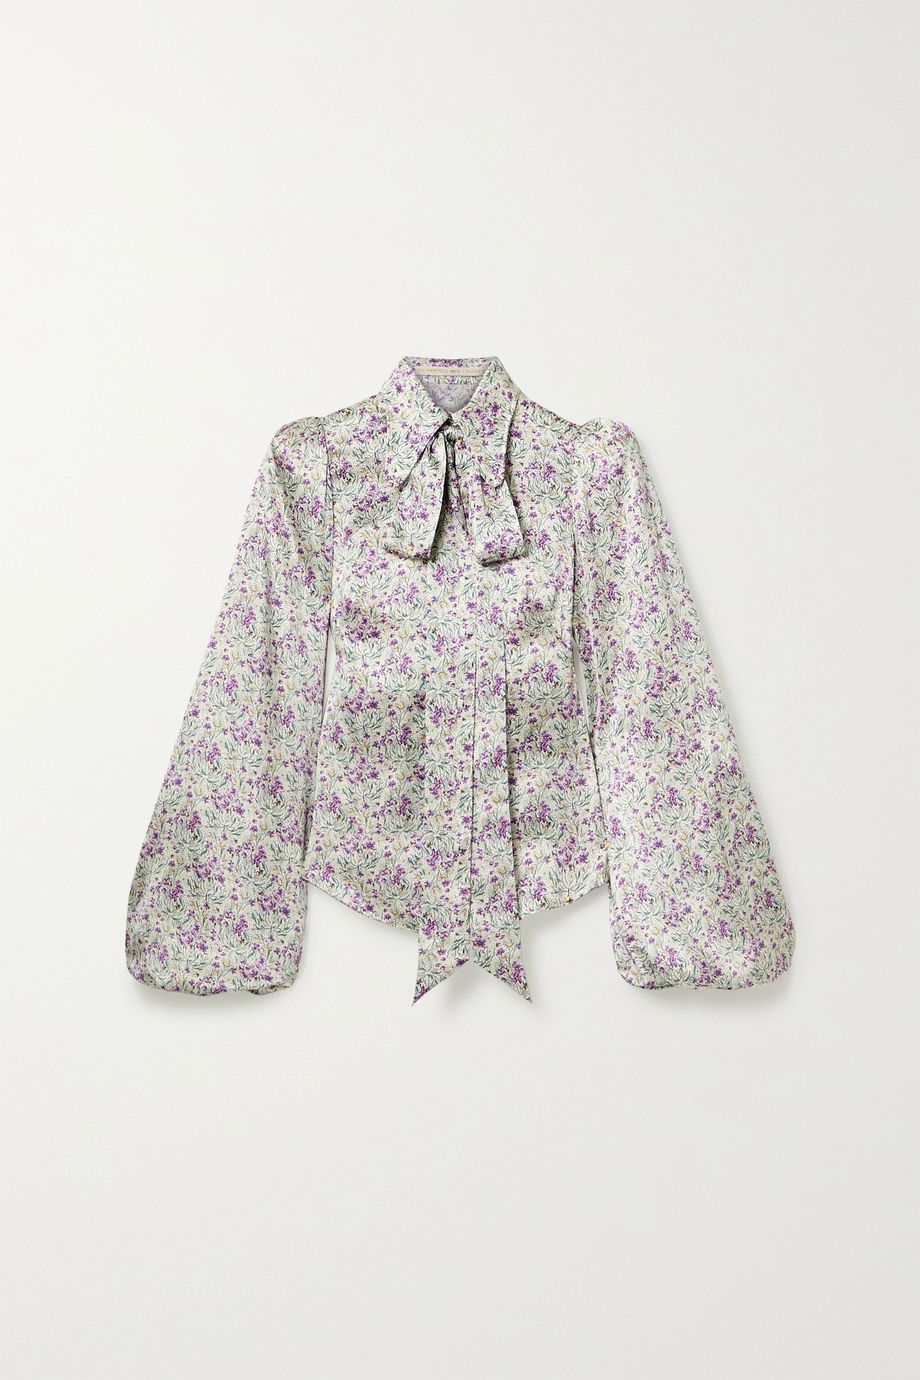 The Vampire's Wife Total Mayhem pussy-bow floral-print silk-satin blouse